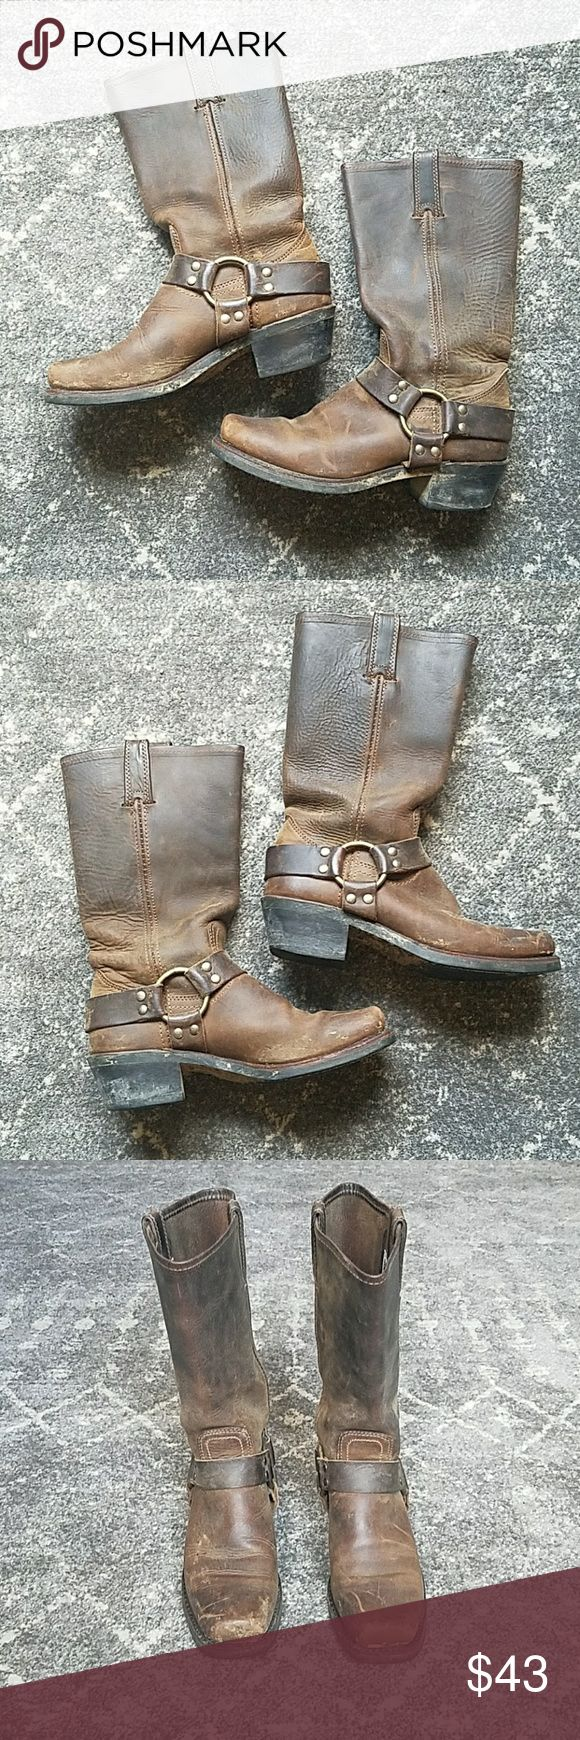 Frye Harness boot size 7 These boots have barely been worn, though once was on a very rainy day so there is a little residue from mud. I've washed them but didn't want to get too aggressive and damage the shoes. All these need is a little care and they will truly be good as new 💙 price reflects condition, please ask me anything! Frye Shoes